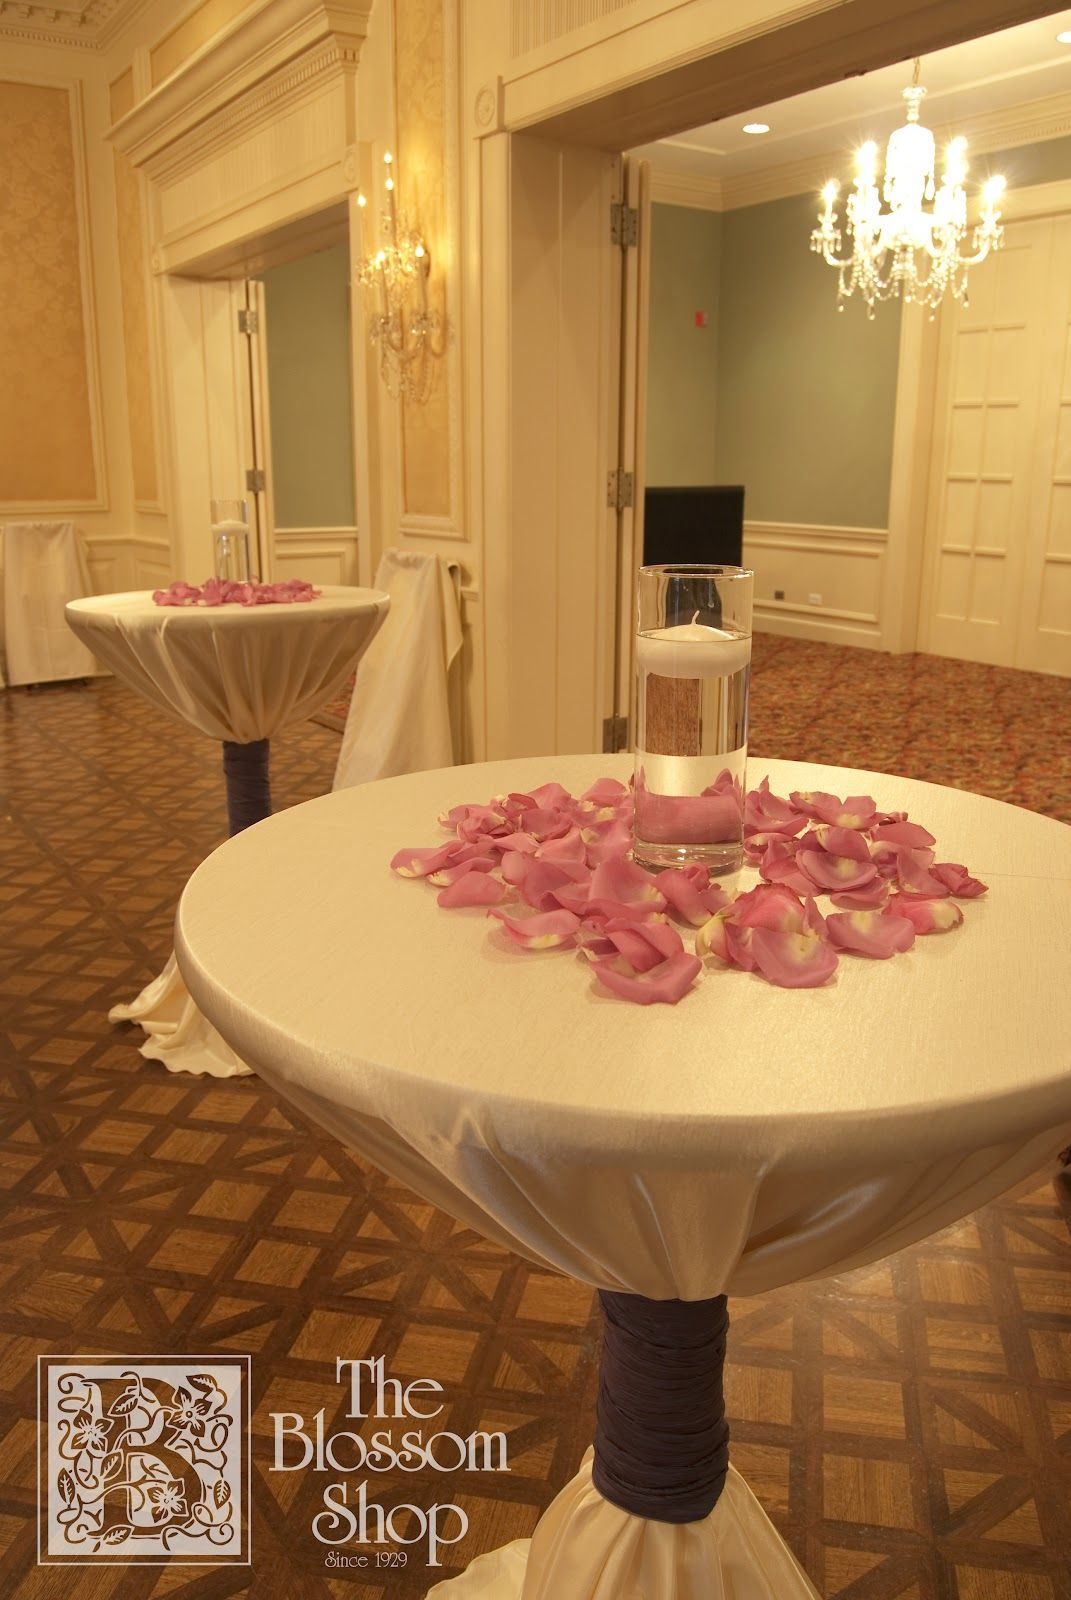 Bistro tables with lavender rose petals and a tall cylinder vase bistro tables with lavender rose petals and a tall cylinder vase with a floating candle reviewsmspy